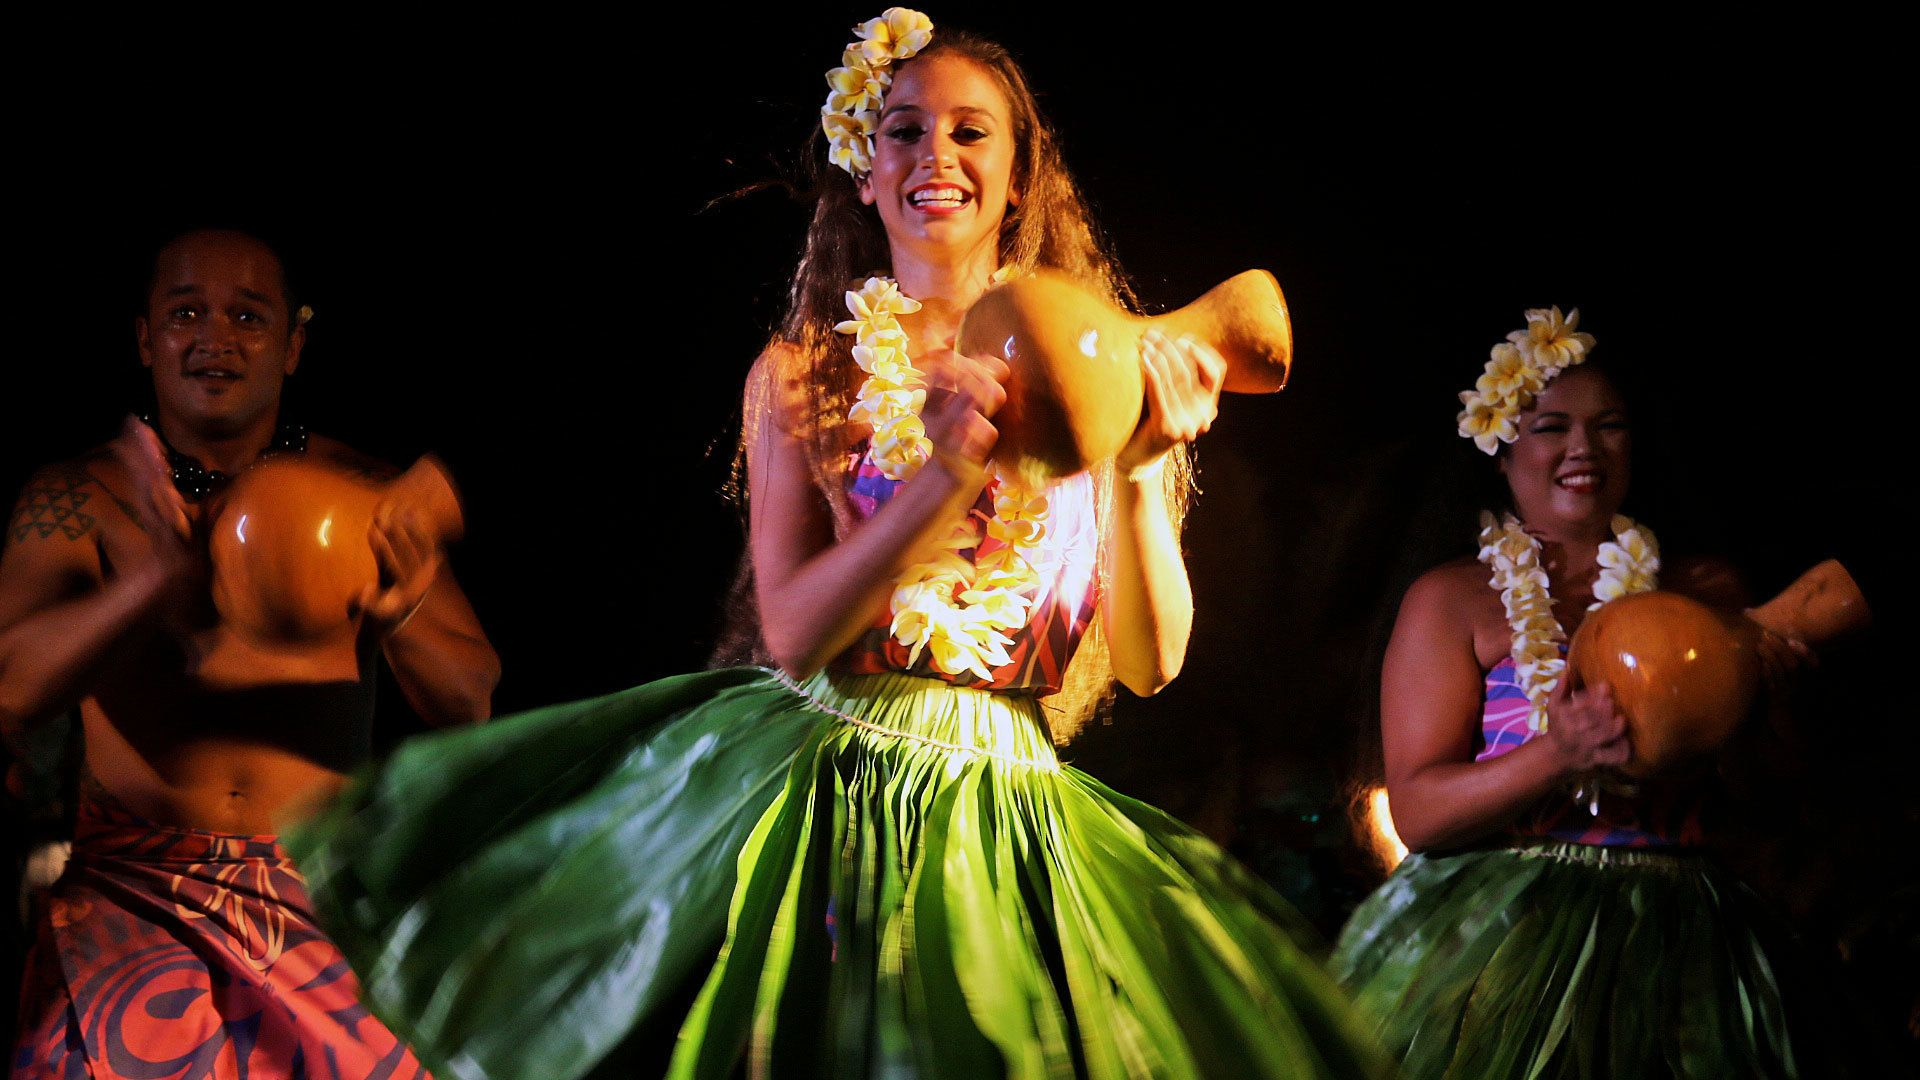 Luau performers in the middle of performance in Kauai